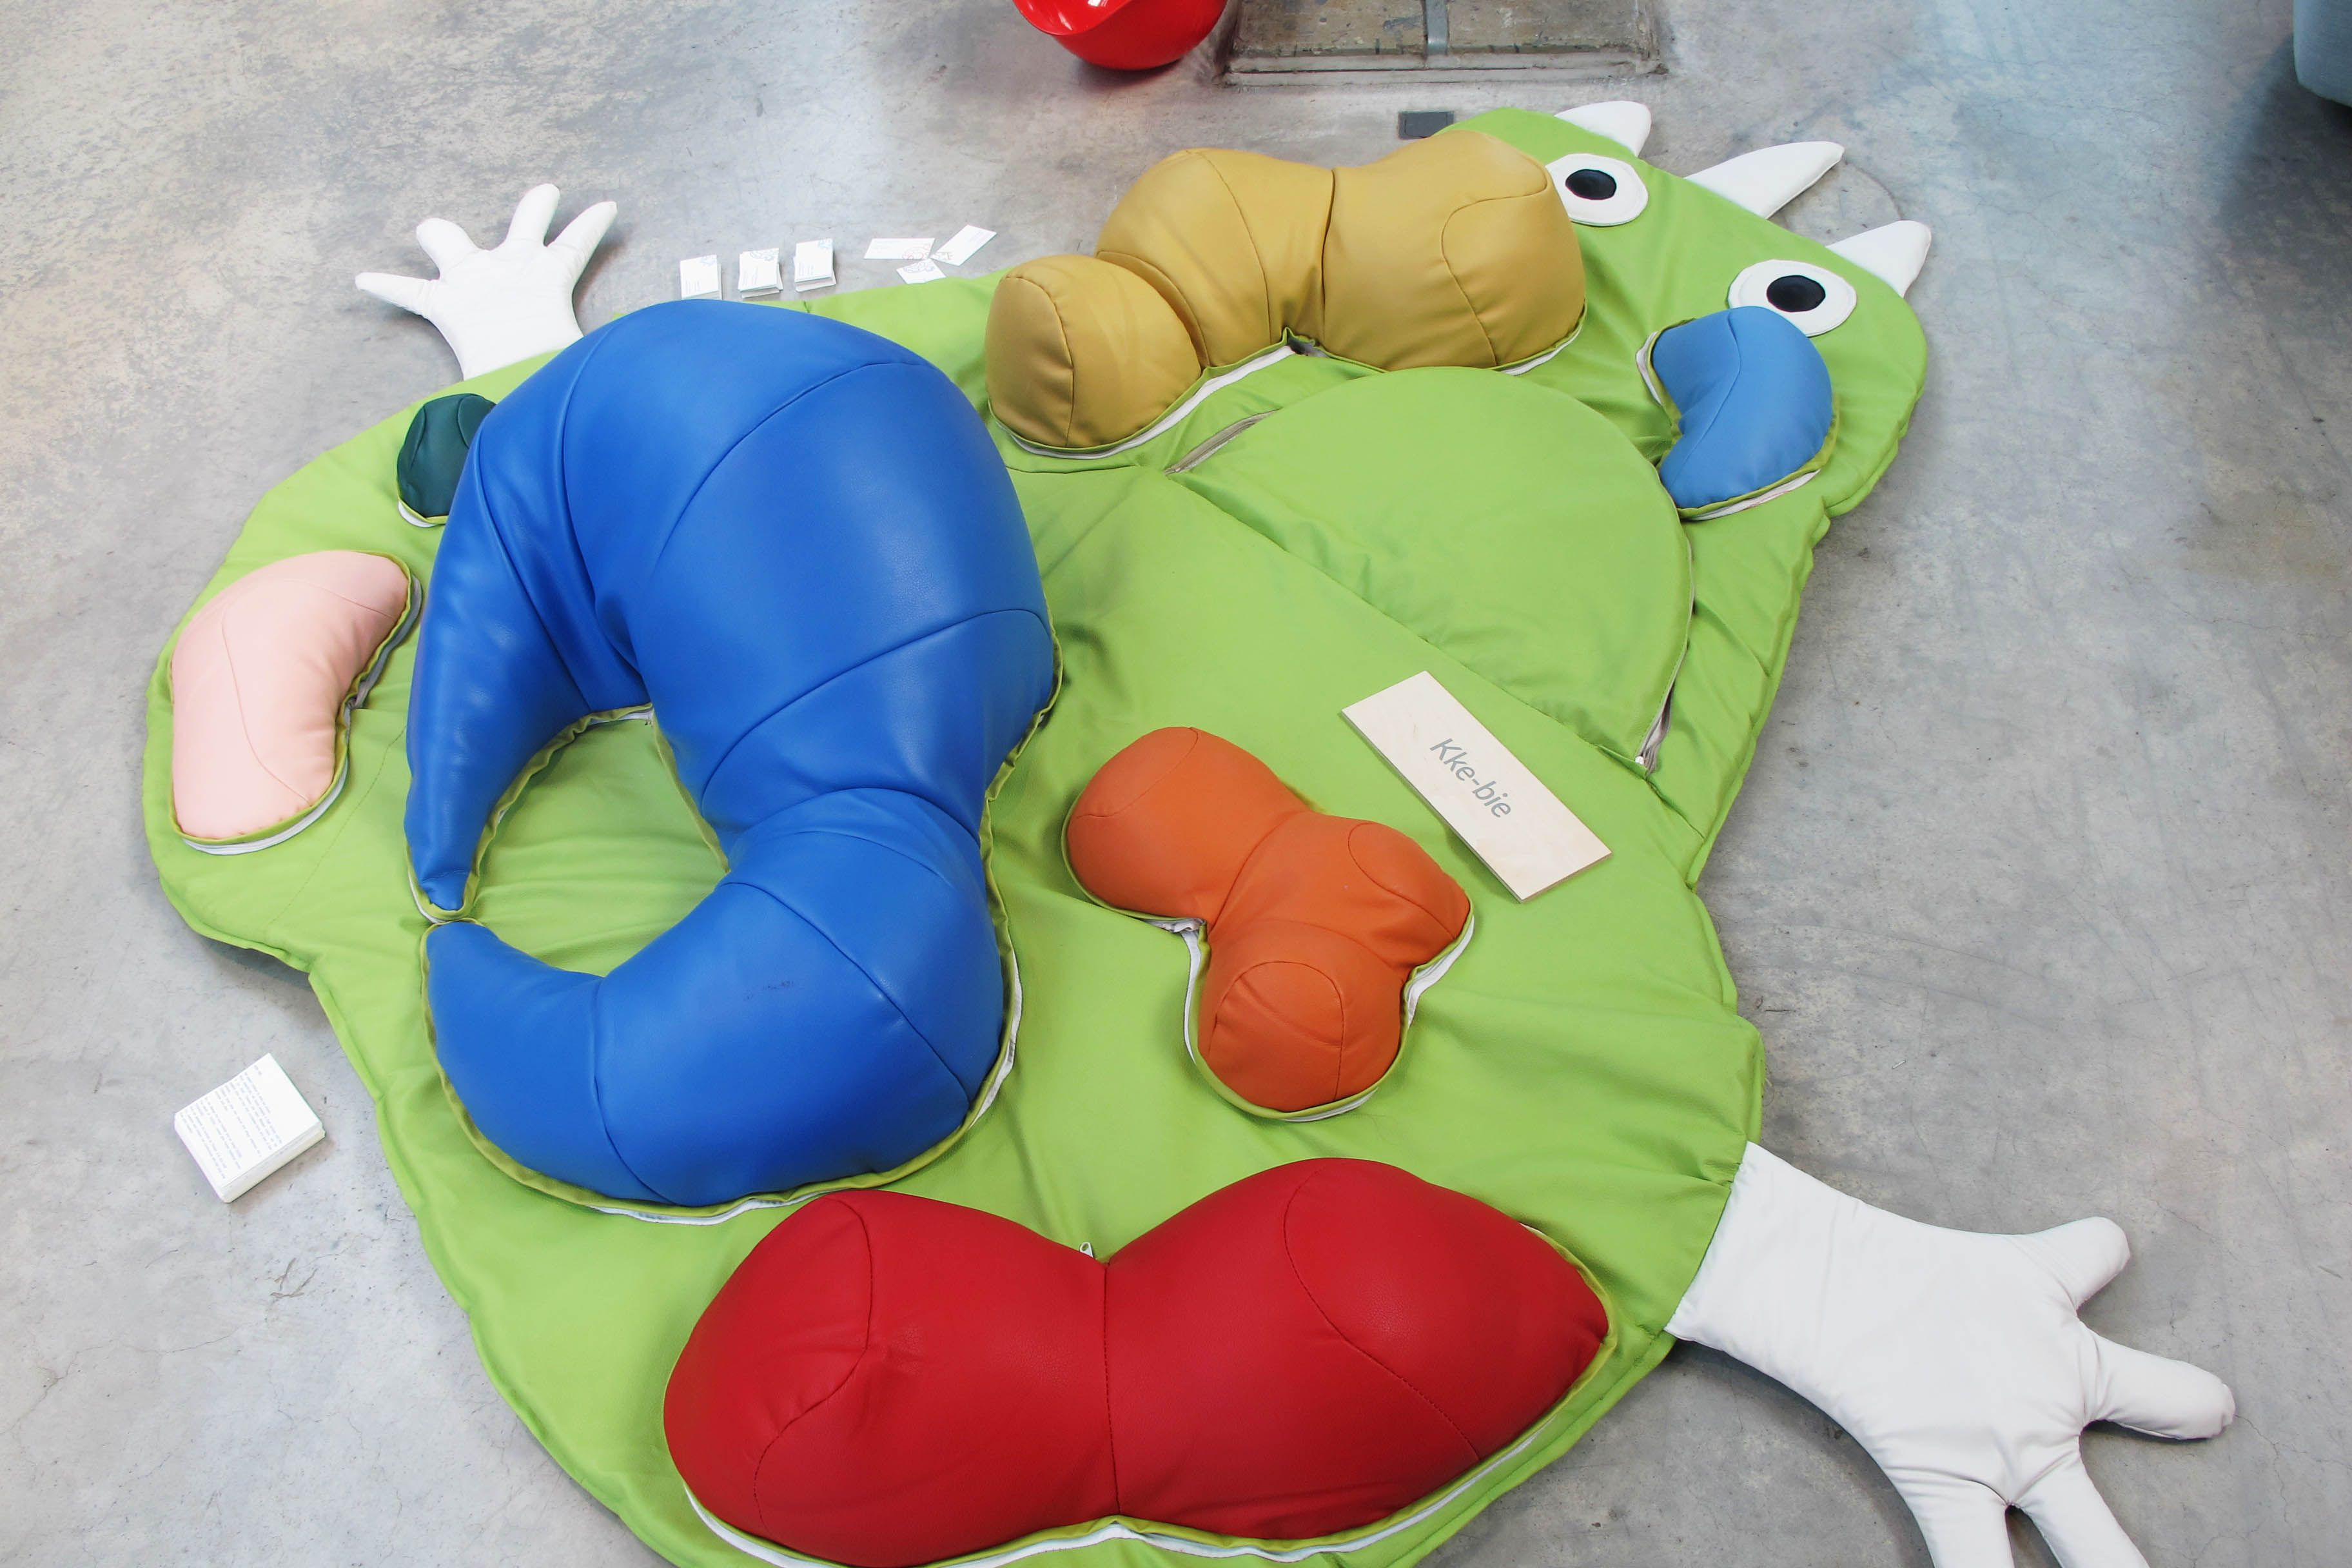 kke-bie is a soft and cozy playing mat especially designed for toddlers and kids .